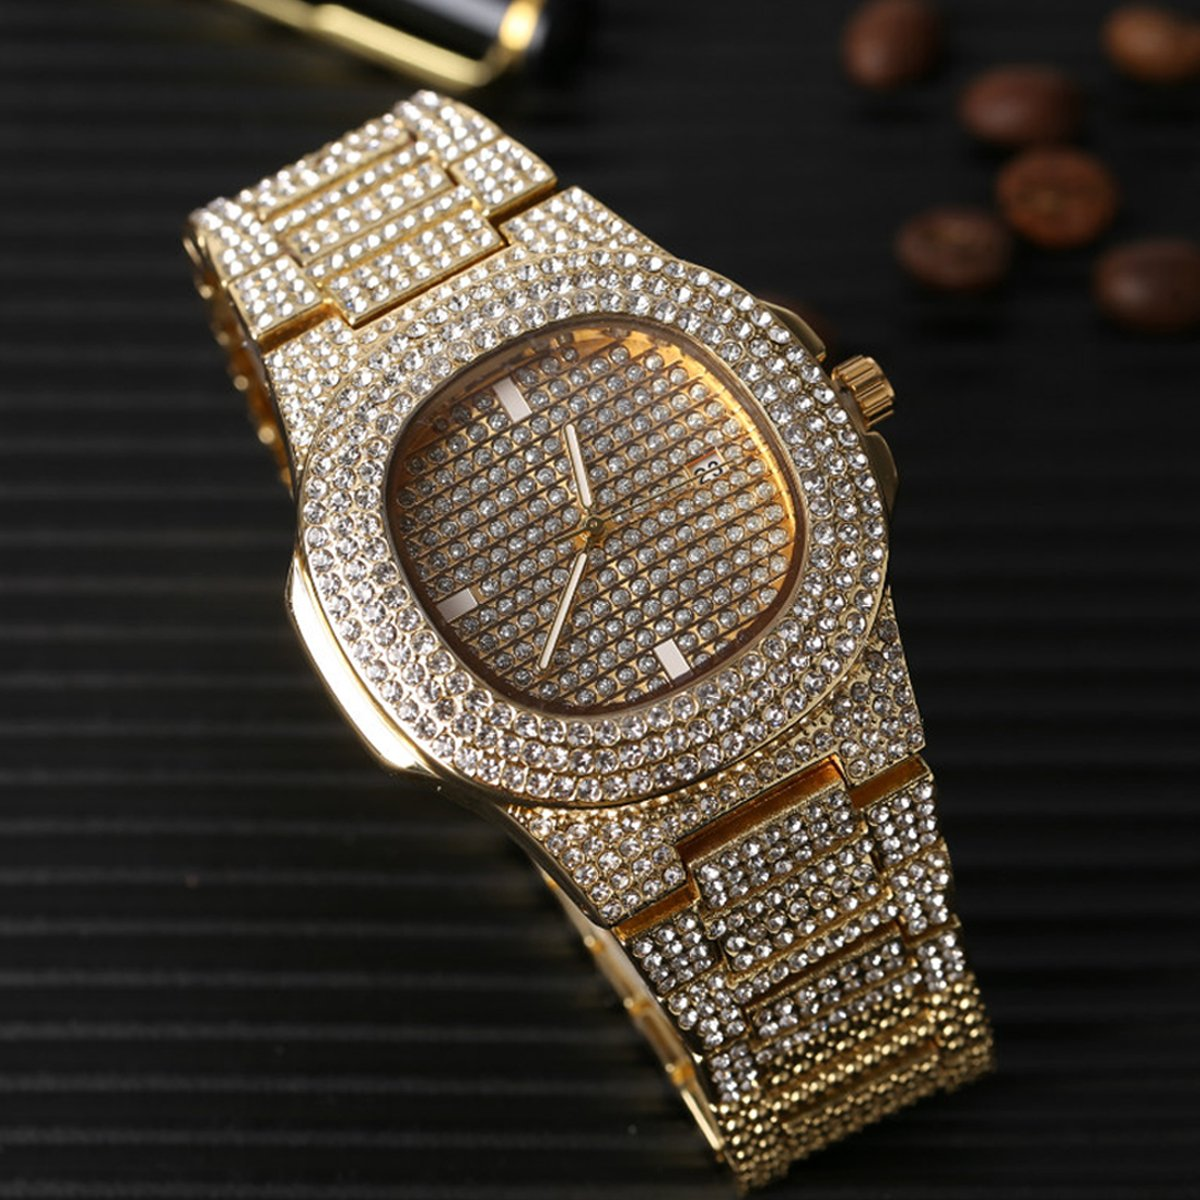 Bracelet Clasp Hip Hop Diamond Jewelry Waterproof Luxury Fashion Watch